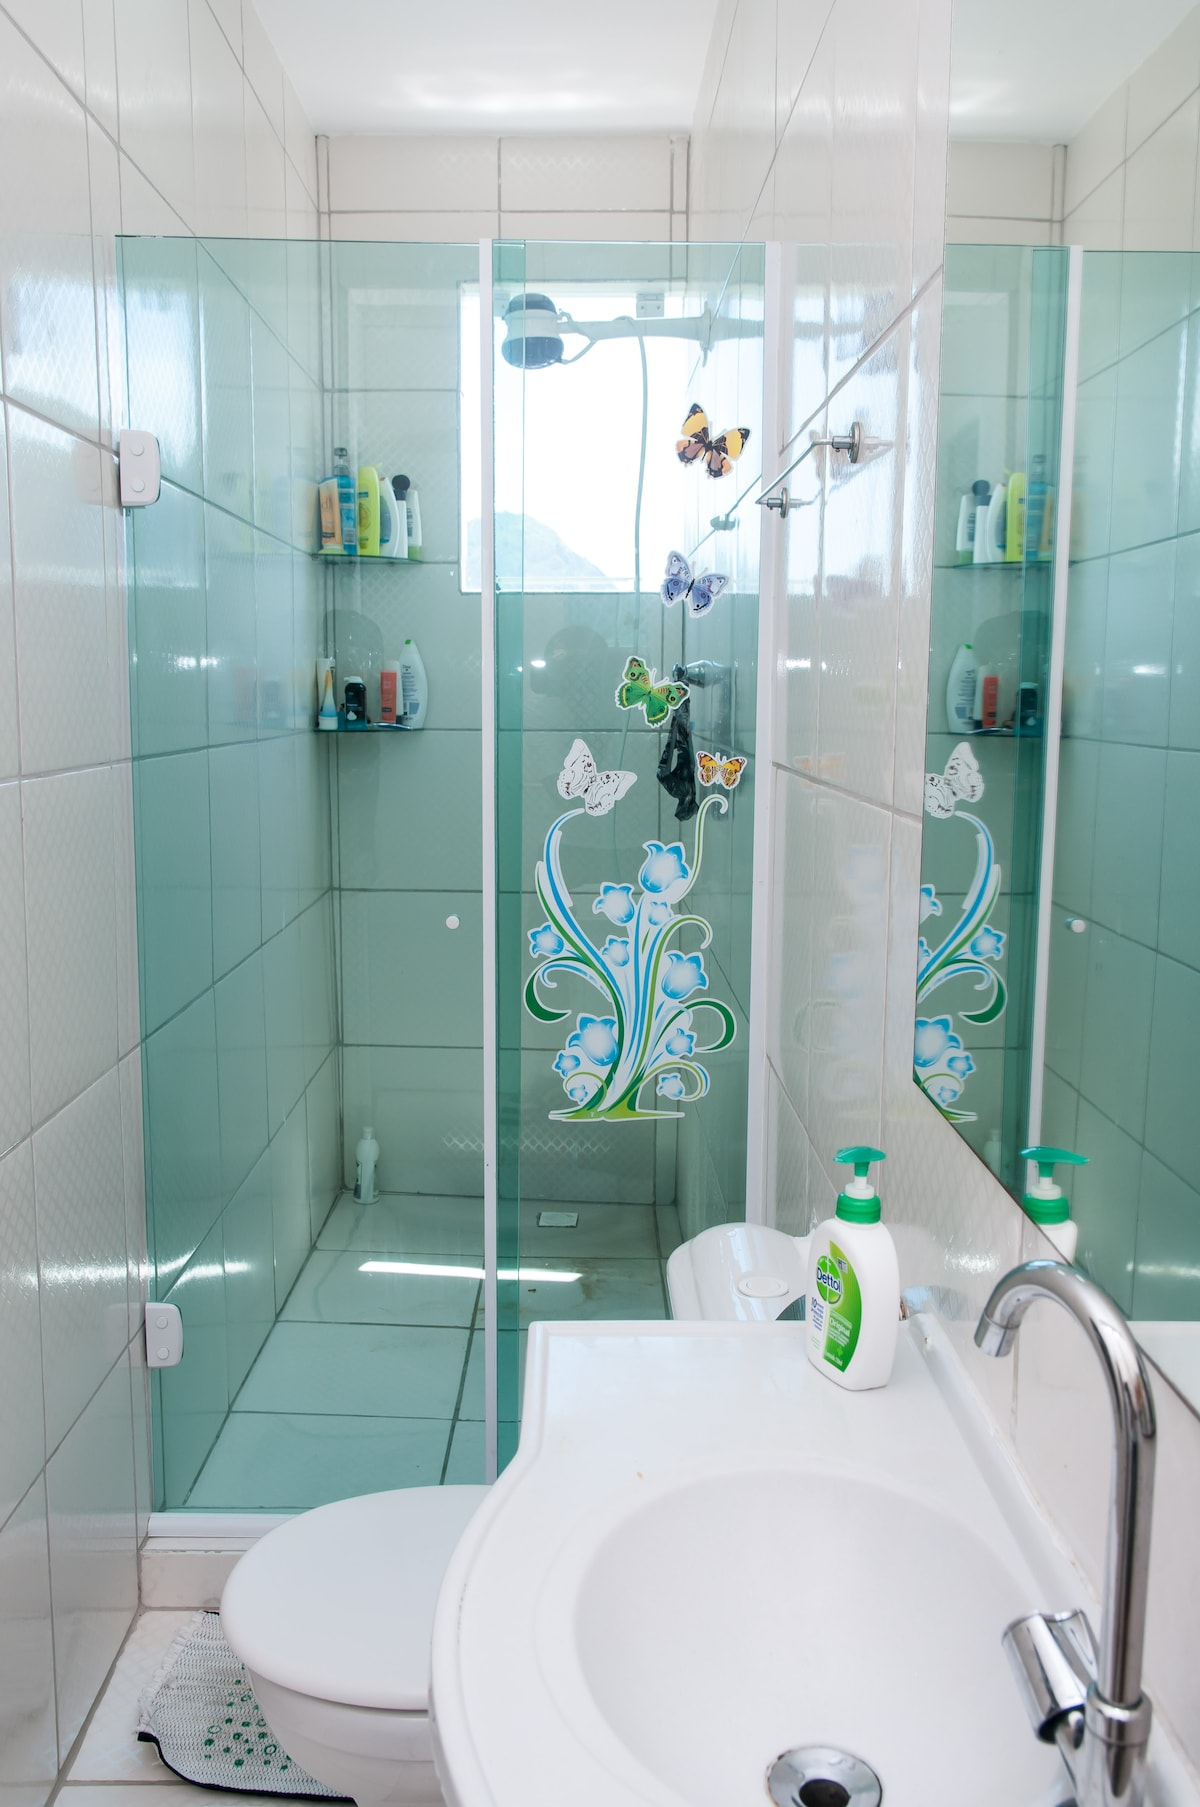 This shower room and WC is shared between the 2 rooms which are for guests.